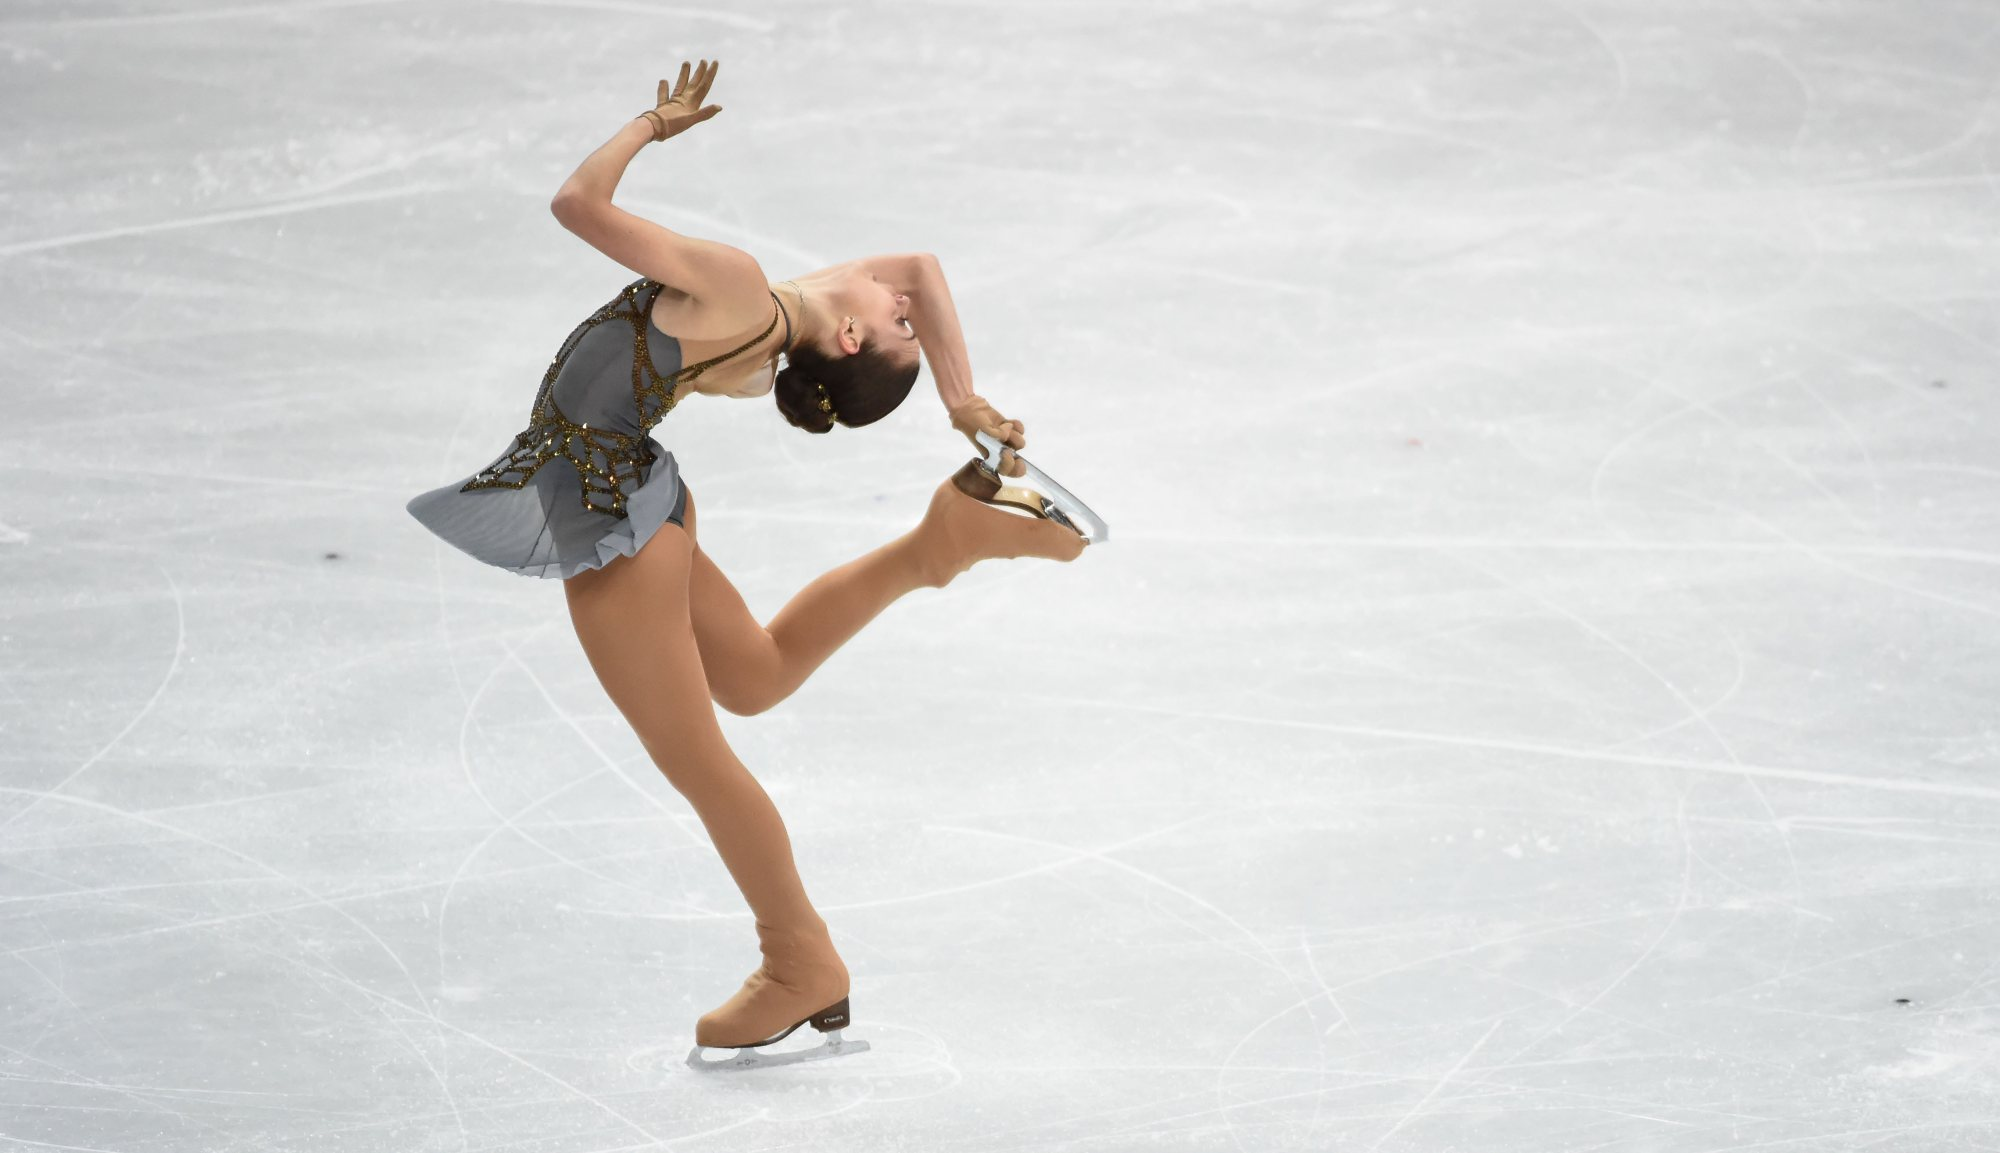 Russia's Adelina Sotnikova performs during the ladies' free skating. Adelina Sotnikova won the gold medal with a total score of 224.59 points.